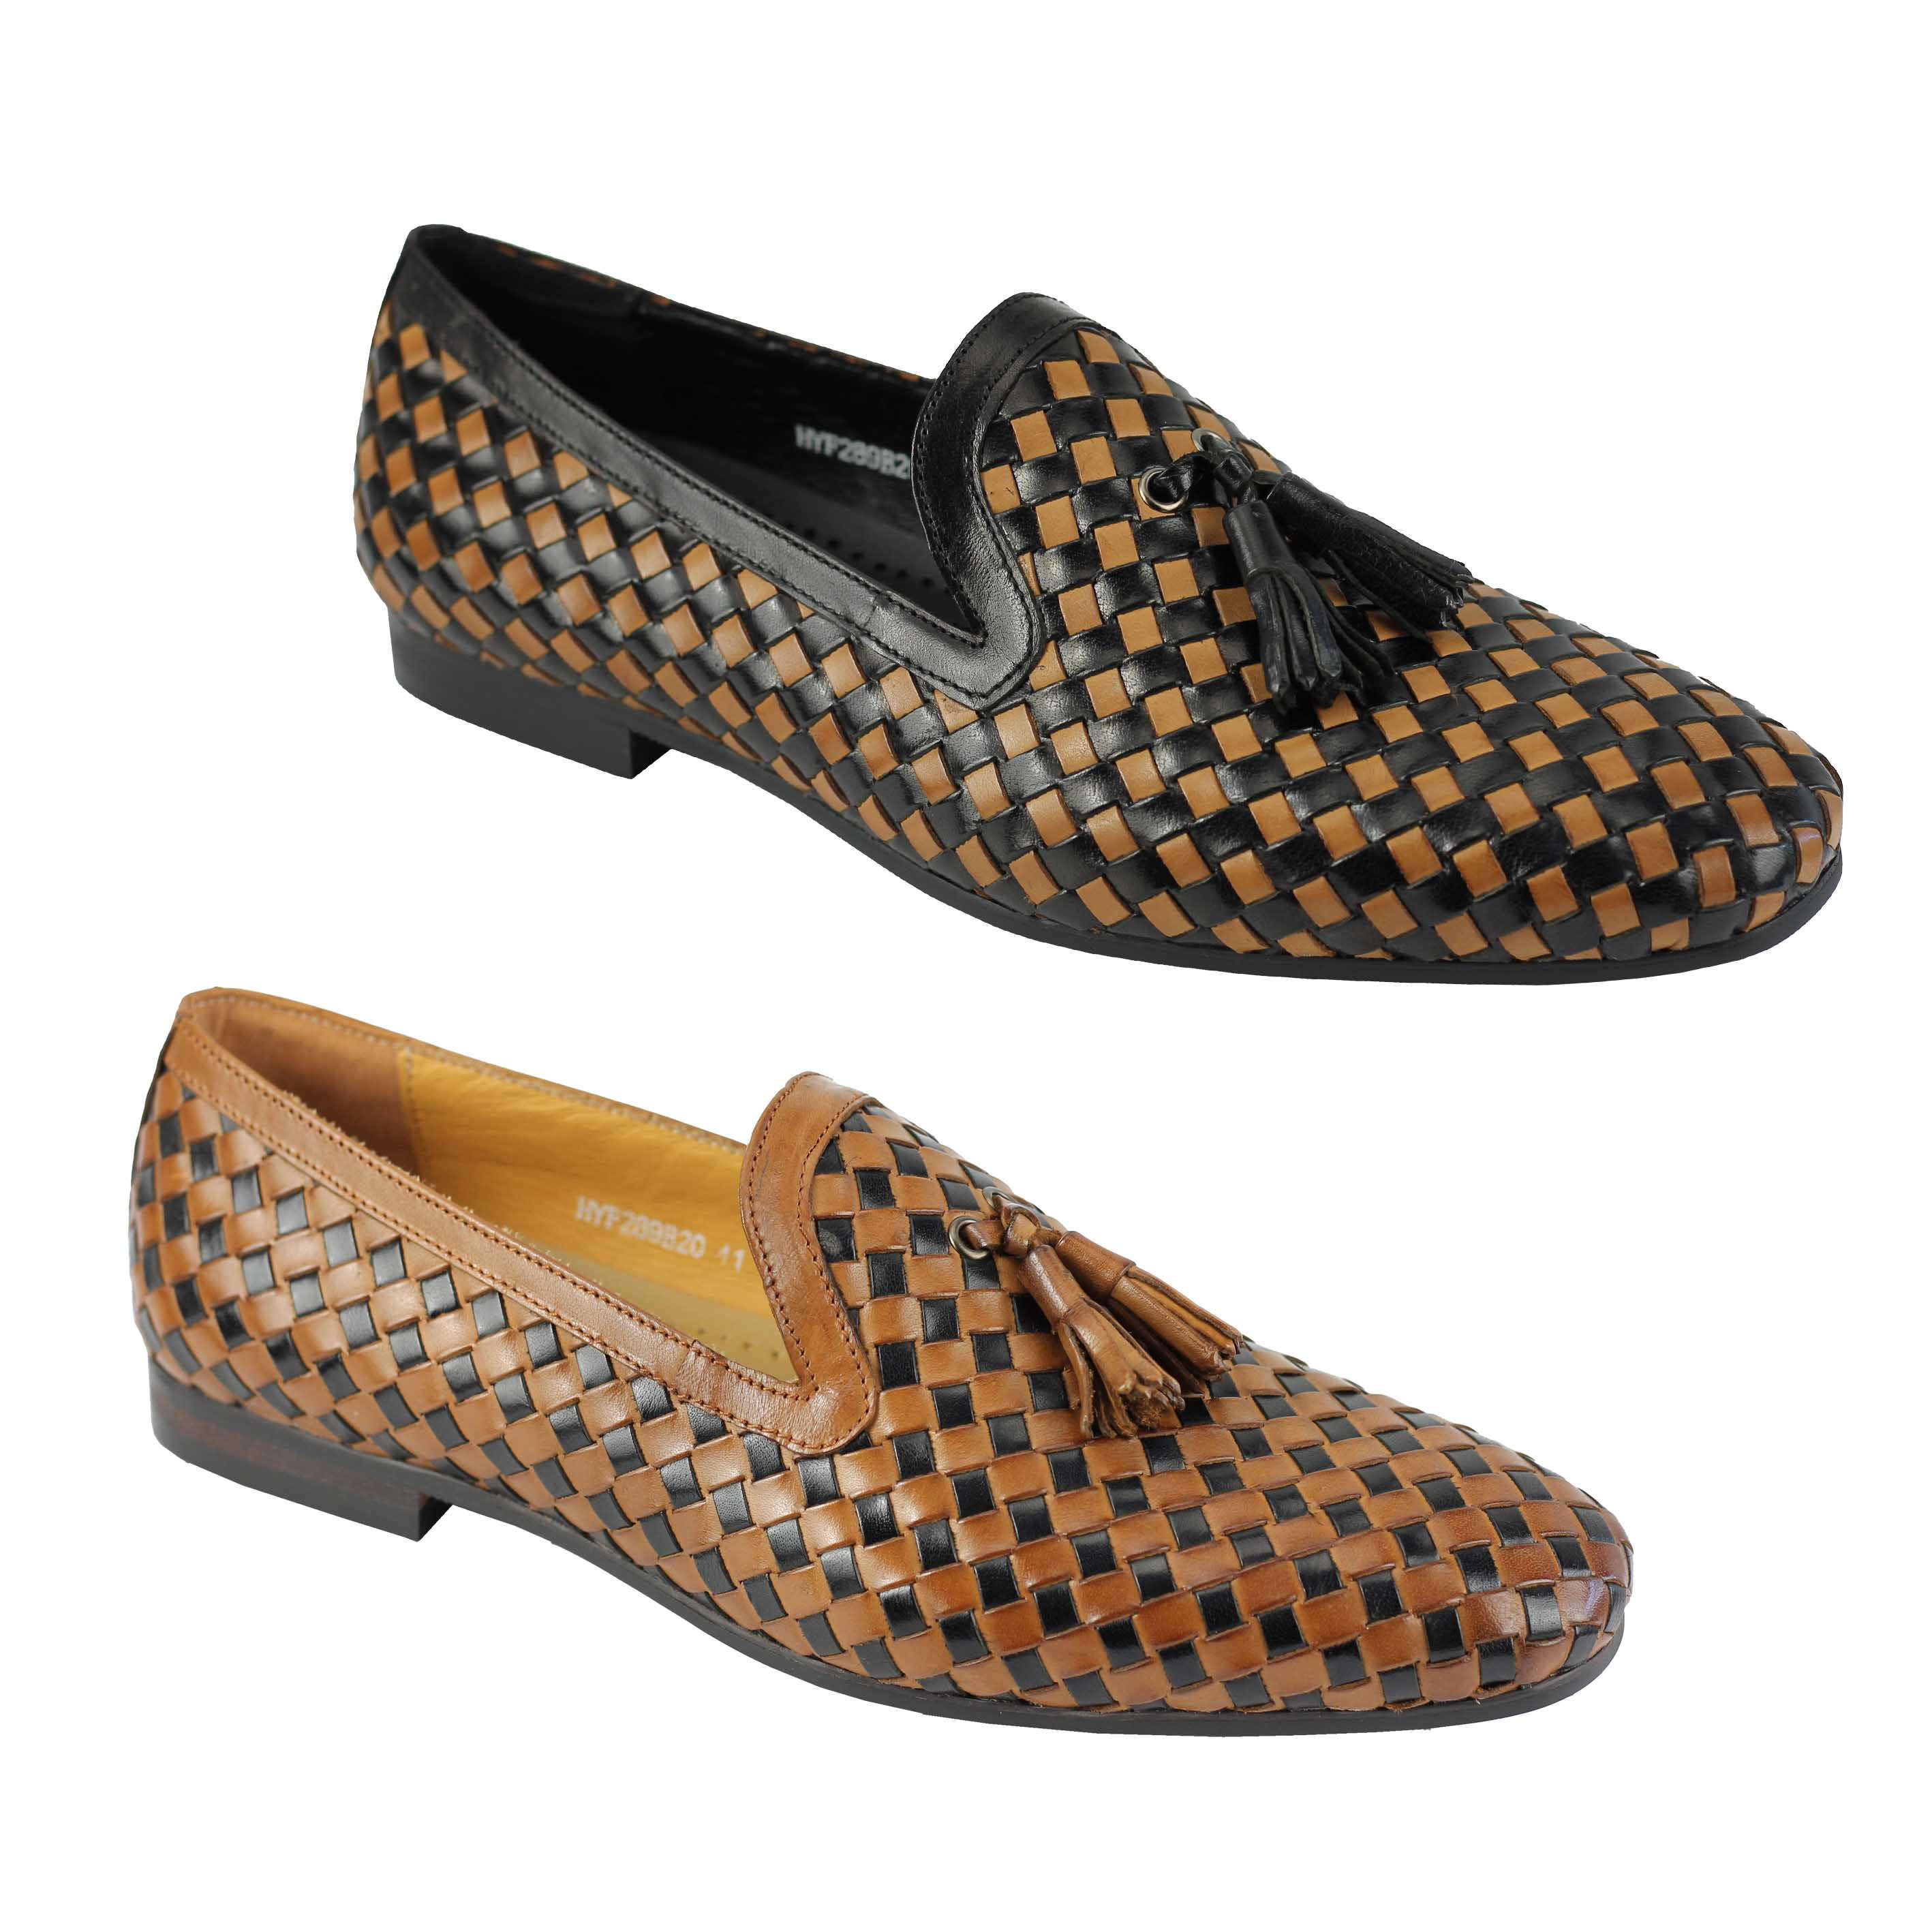 1d8db6441d5d21 Details about Mens Black Brown 2 Tone Woven Real Leather MOD Tassel Loafer  Slip on Shoes